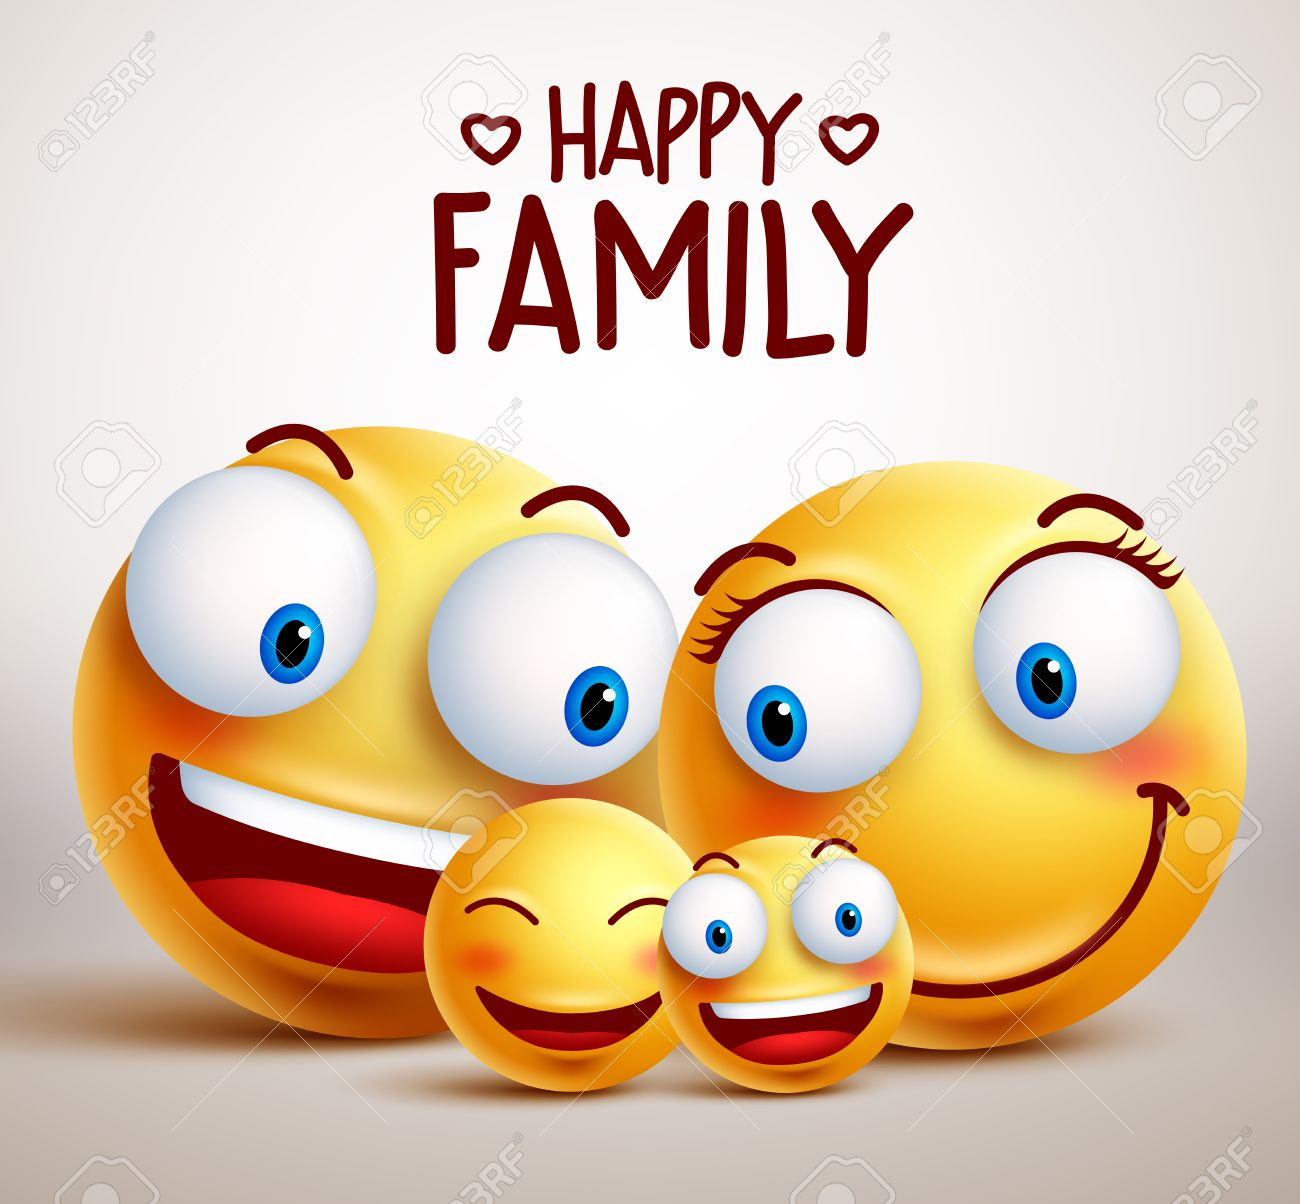 Happy family smiley face characters with father, mother and children bonding together while smiling. illustration. - 65999706